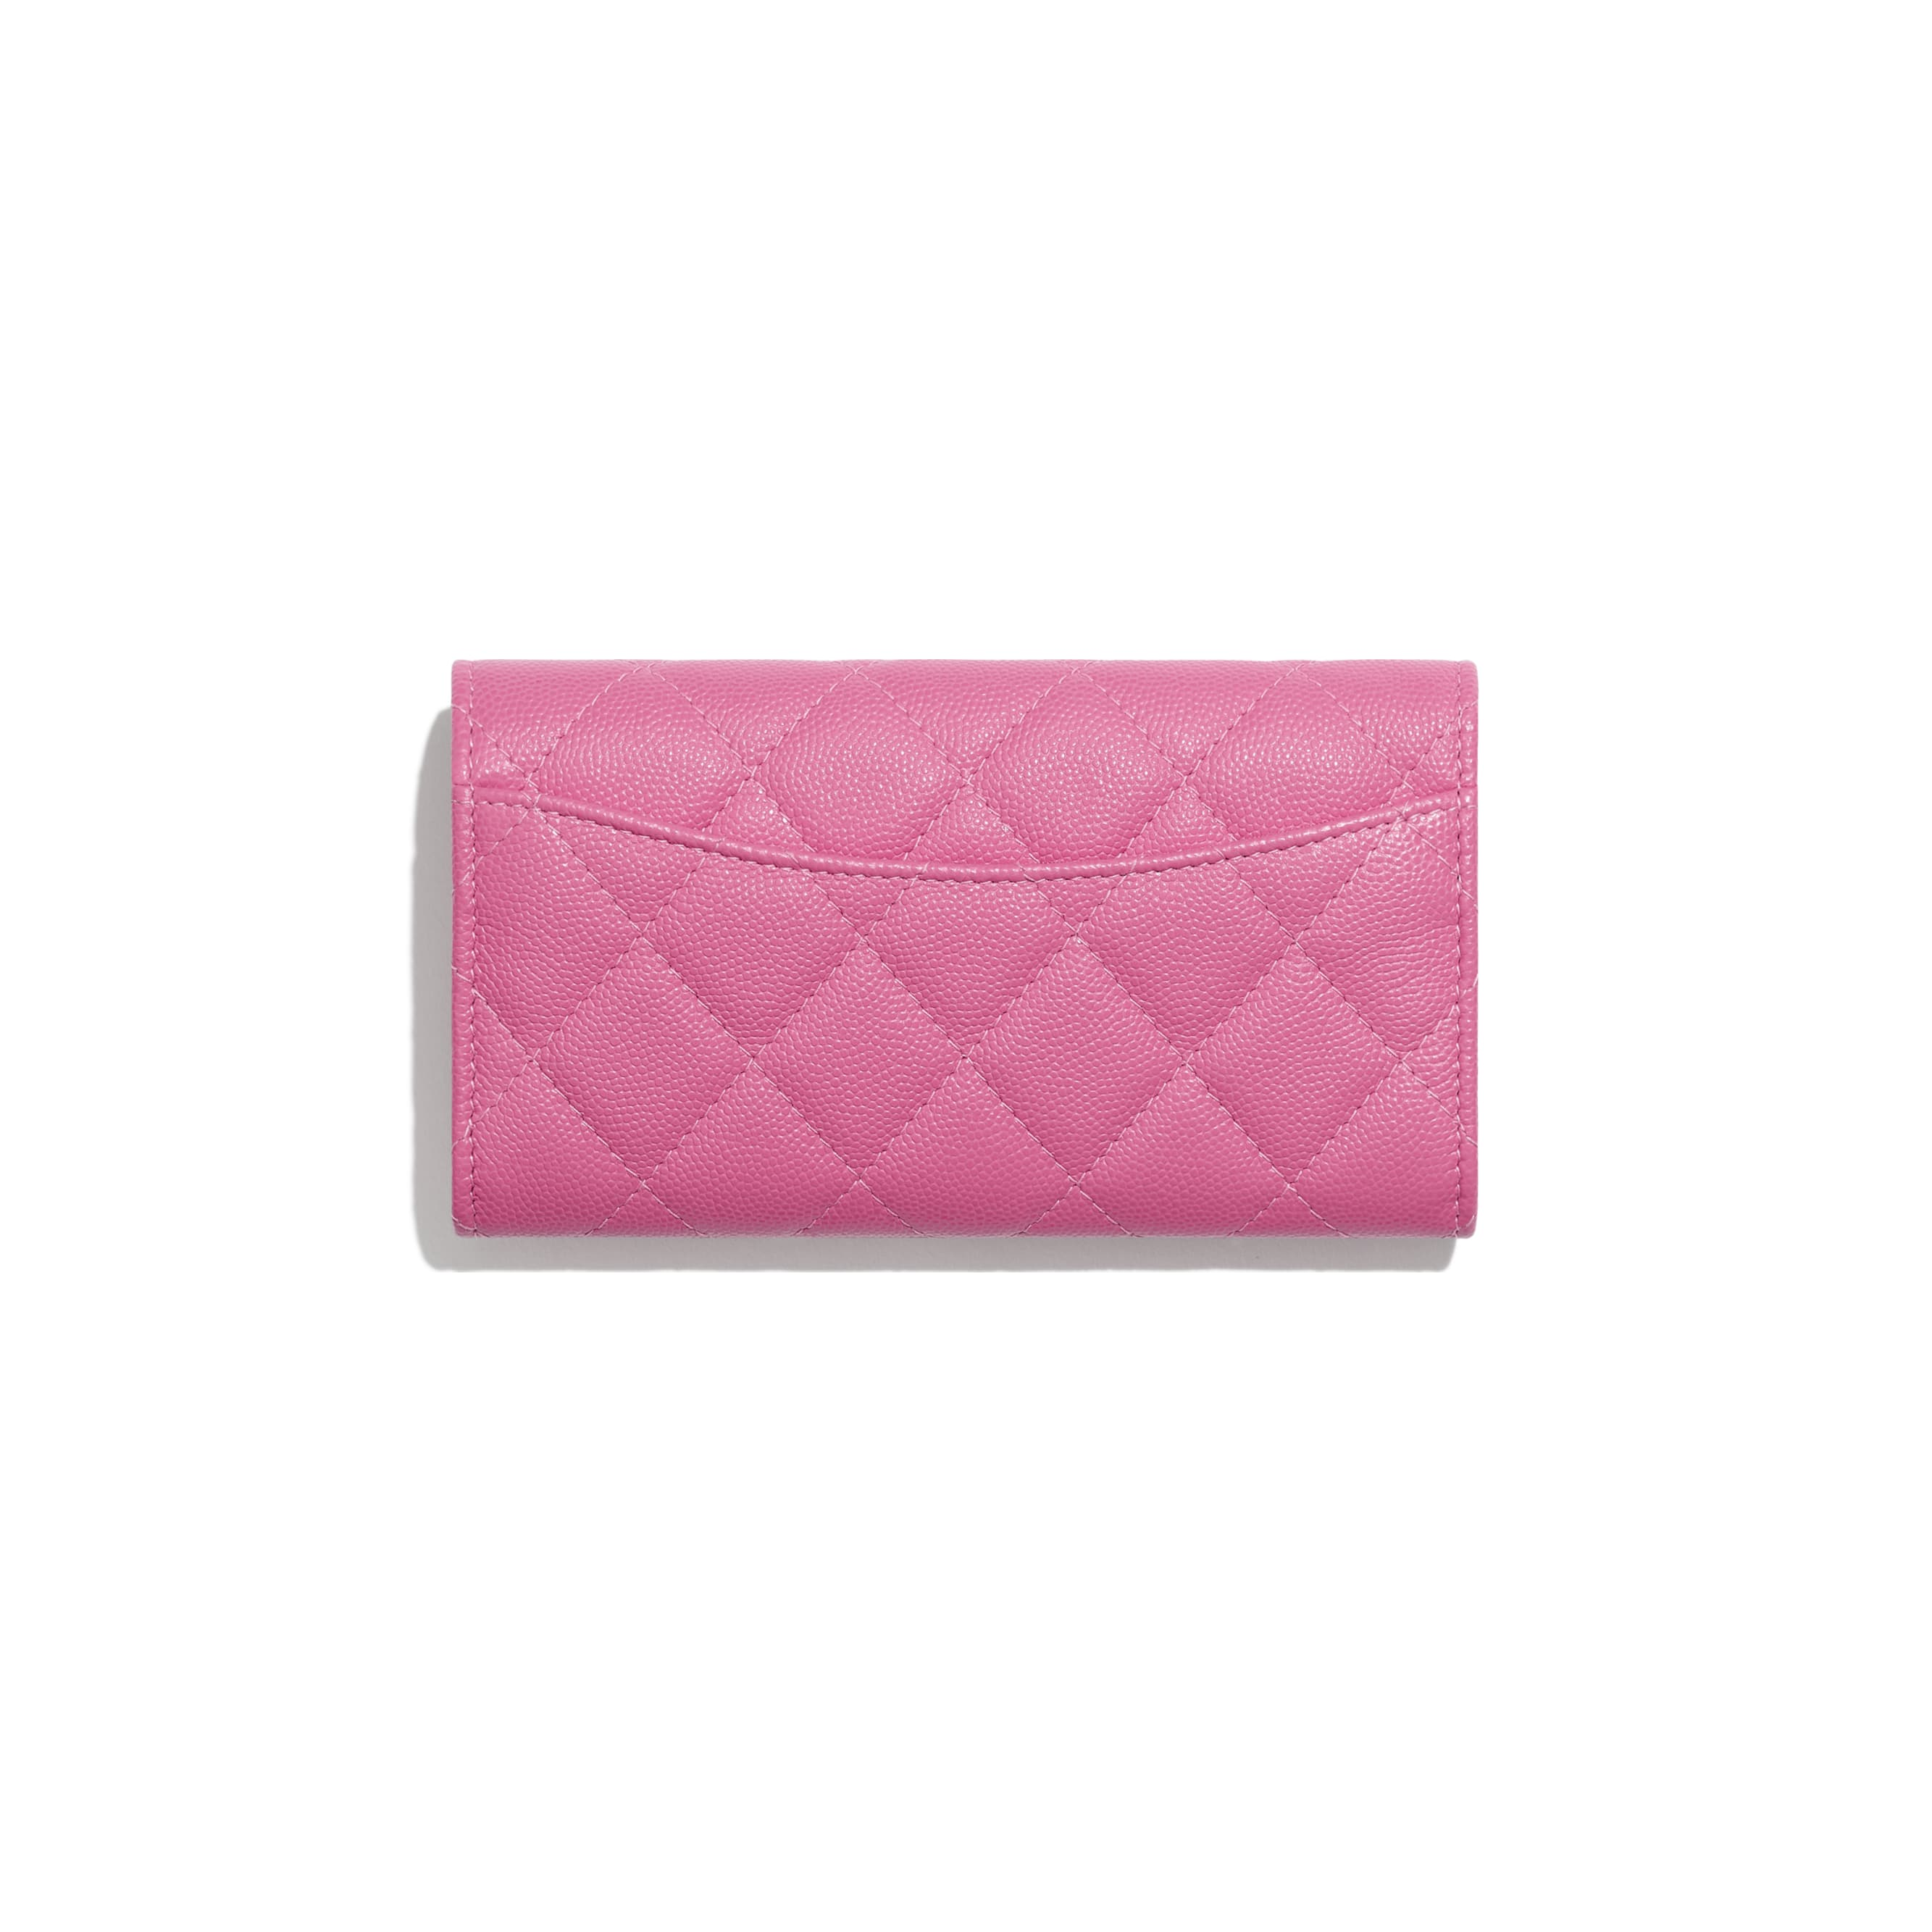 Classic Flap Wallet - Pink - Grained Calfskin & Gold-Tone Metal - Alternative view - see standard sized version